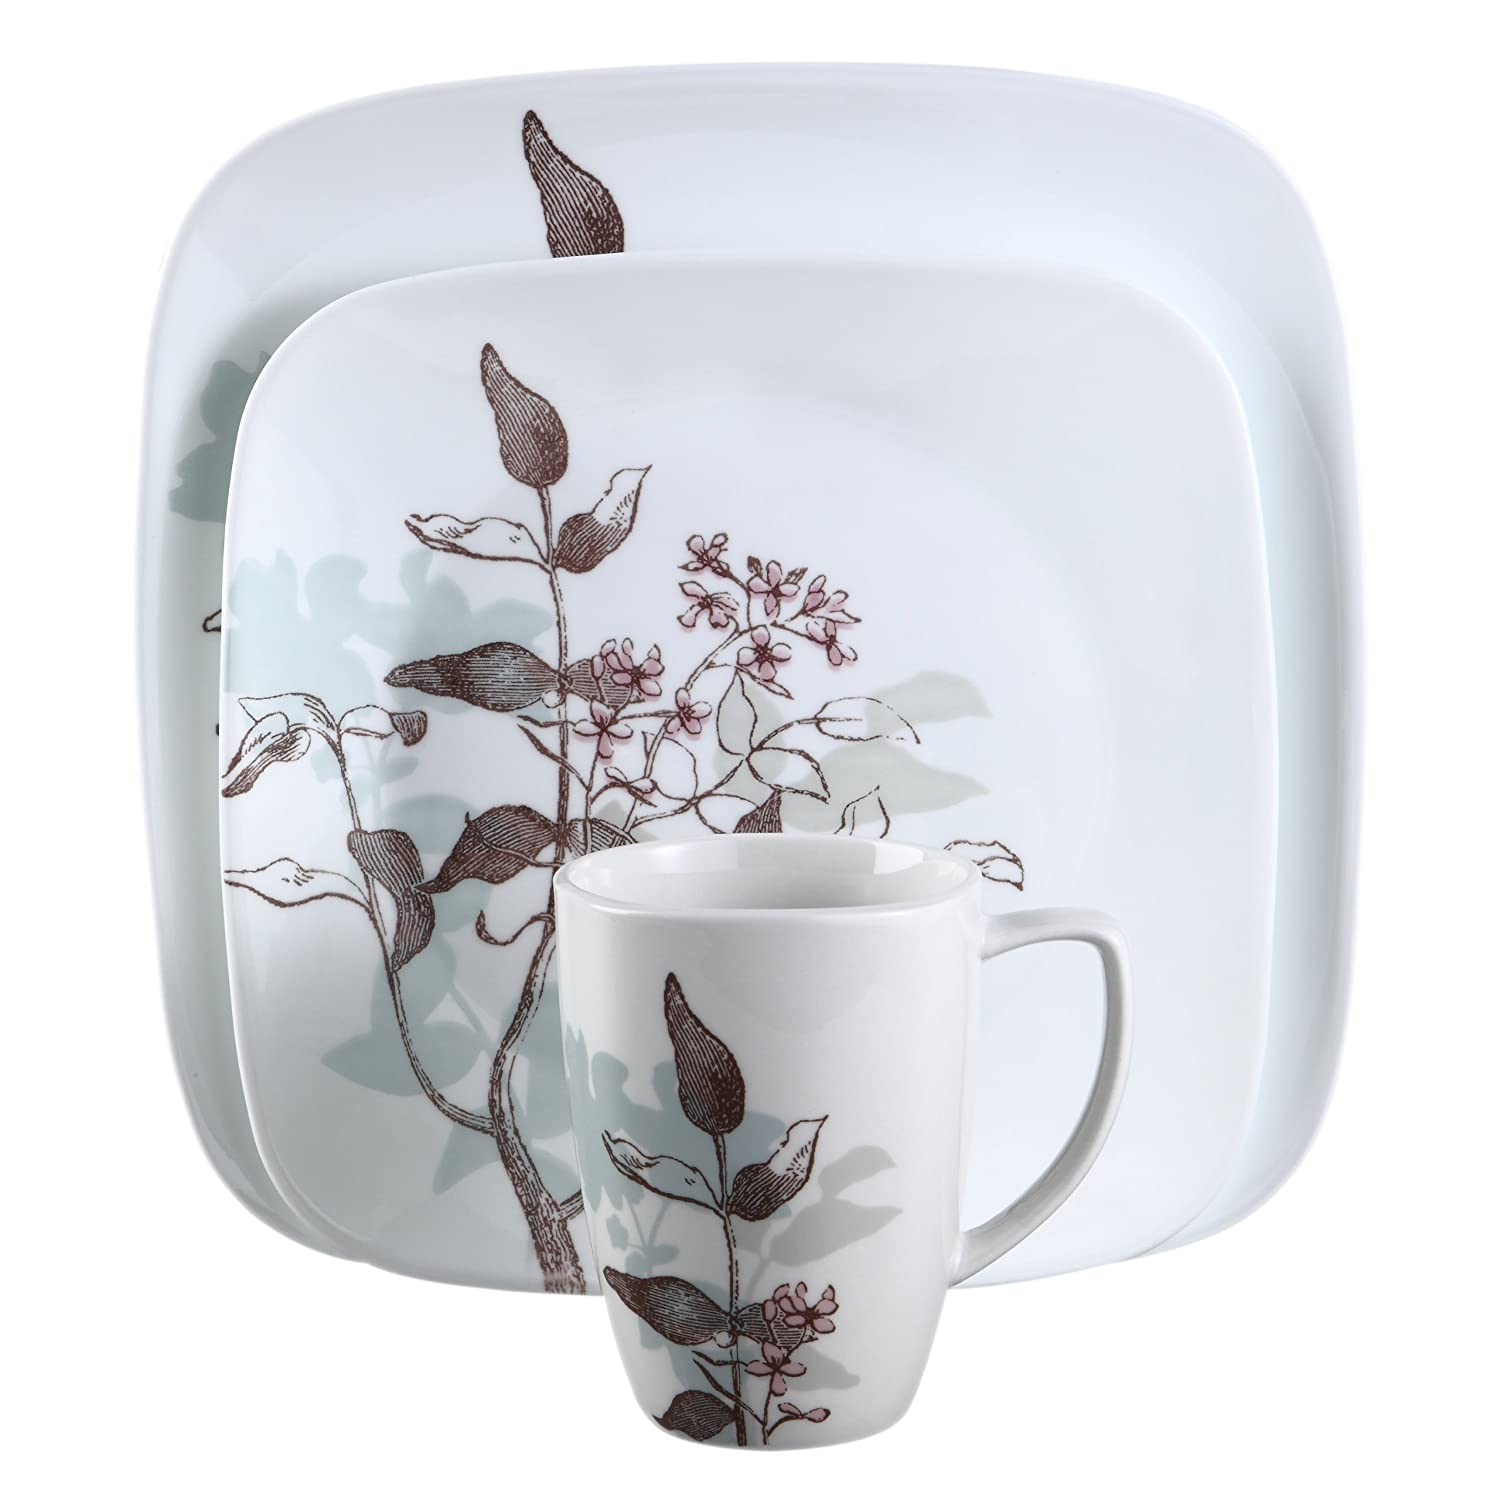 Amazon.com | Corelle Square 16-Piece Dinnerware Set Twilight Grove Service for 4 Dinnerware Sets Dinnerware Sets  sc 1 st  Amazon.com & Amazon.com | Corelle Square 16-Piece Dinnerware Set Twilight ...